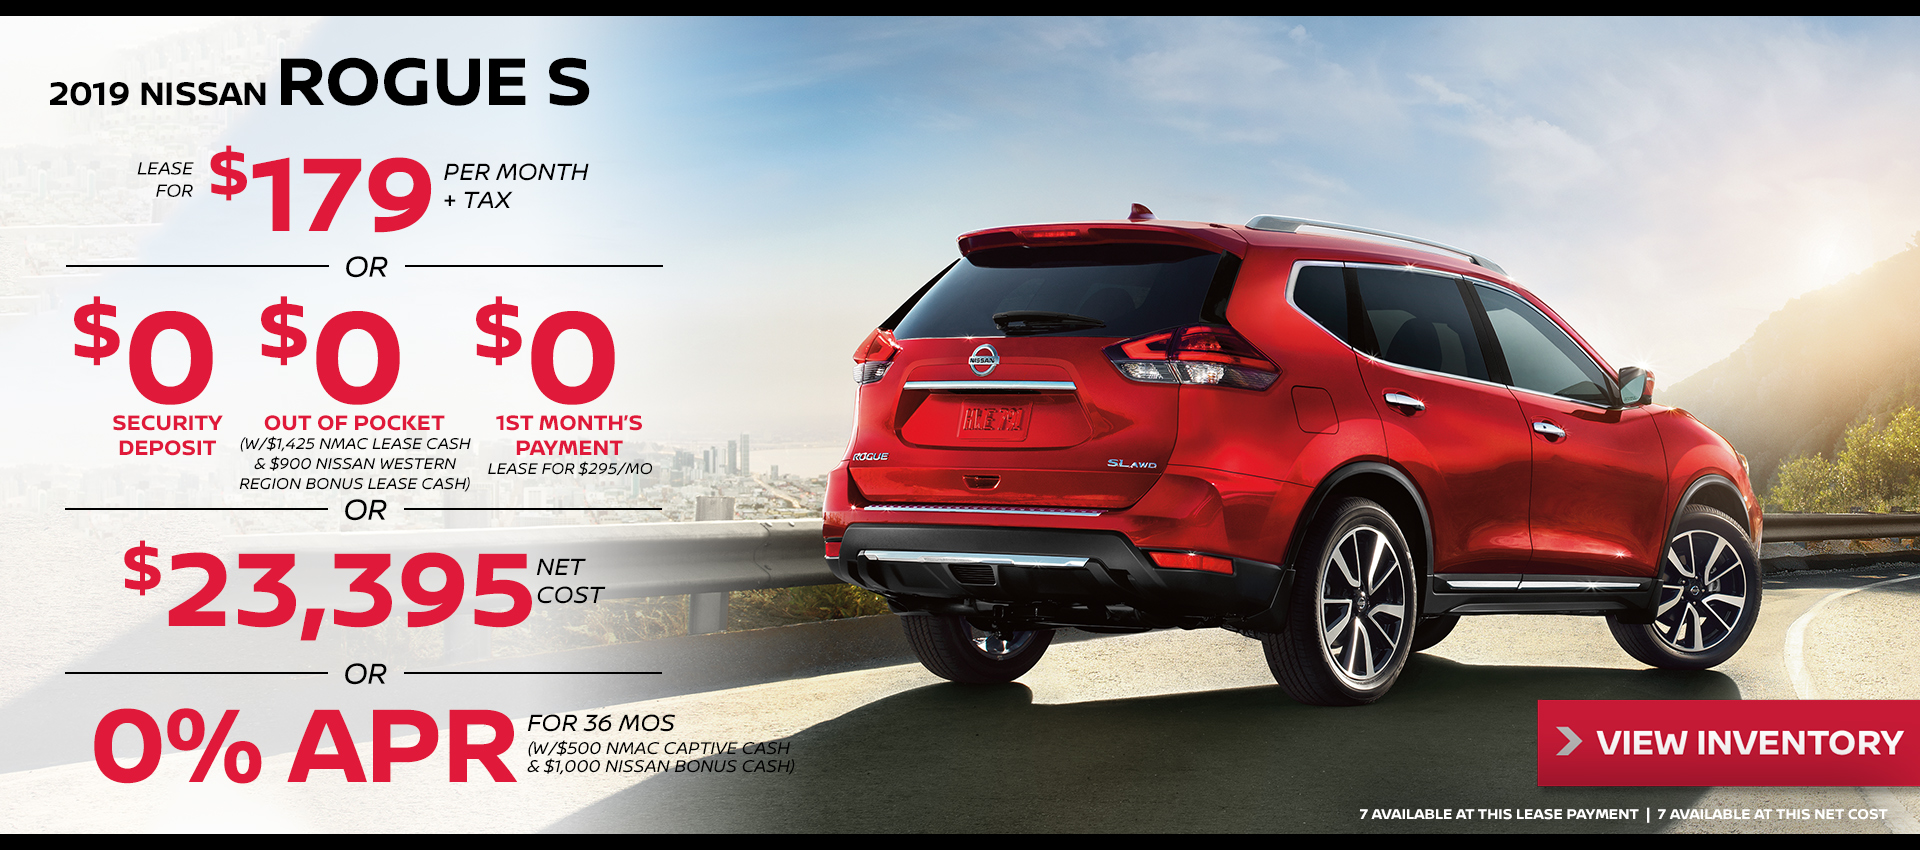 Mossy Nissan - Nissan Rogue $179 Lease HP